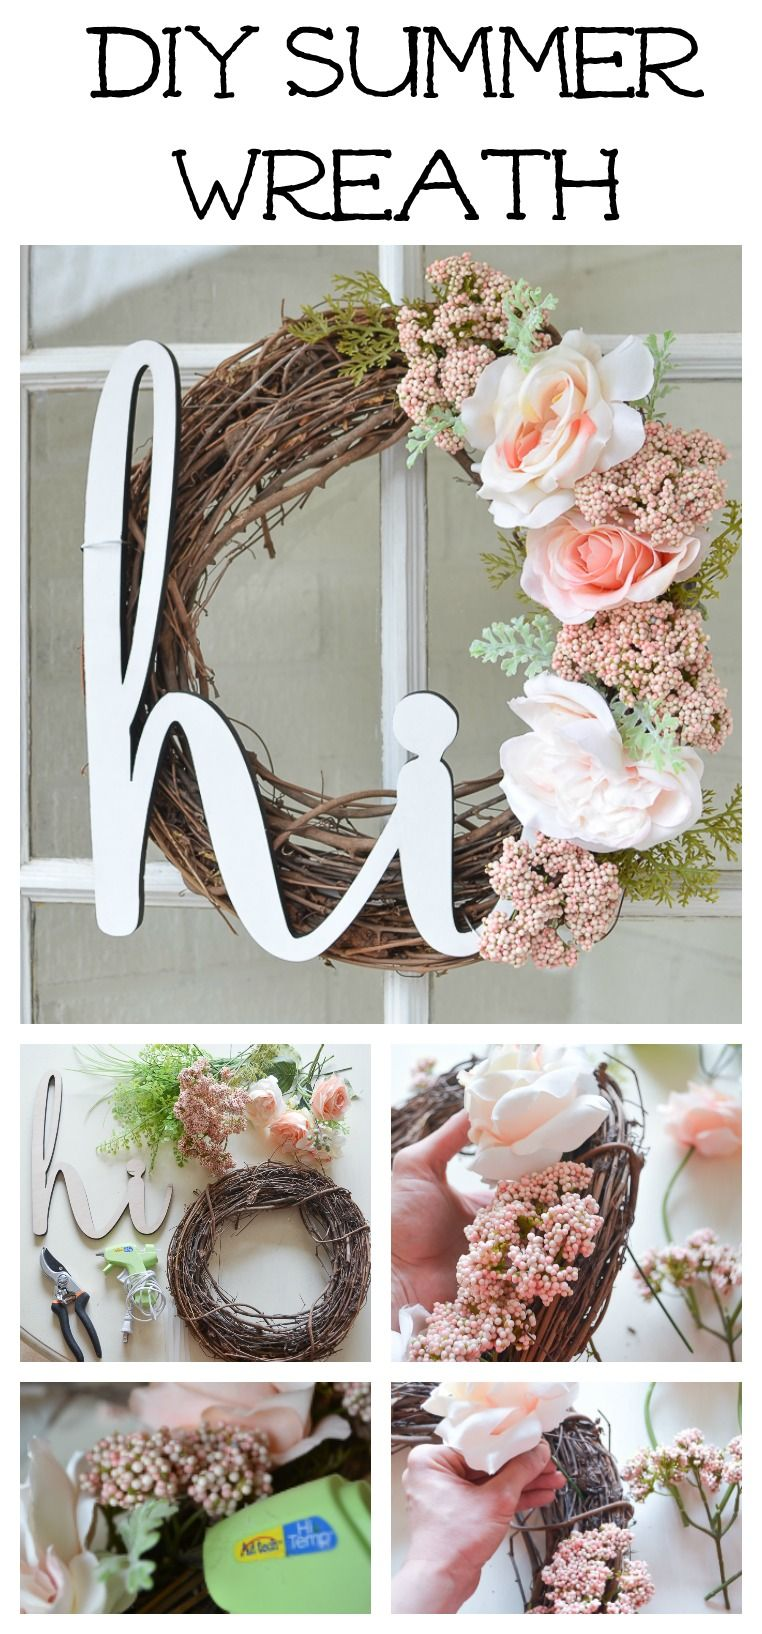 Diy Summer Wreath For Your Front Porch Summer Wreath Diy Summer